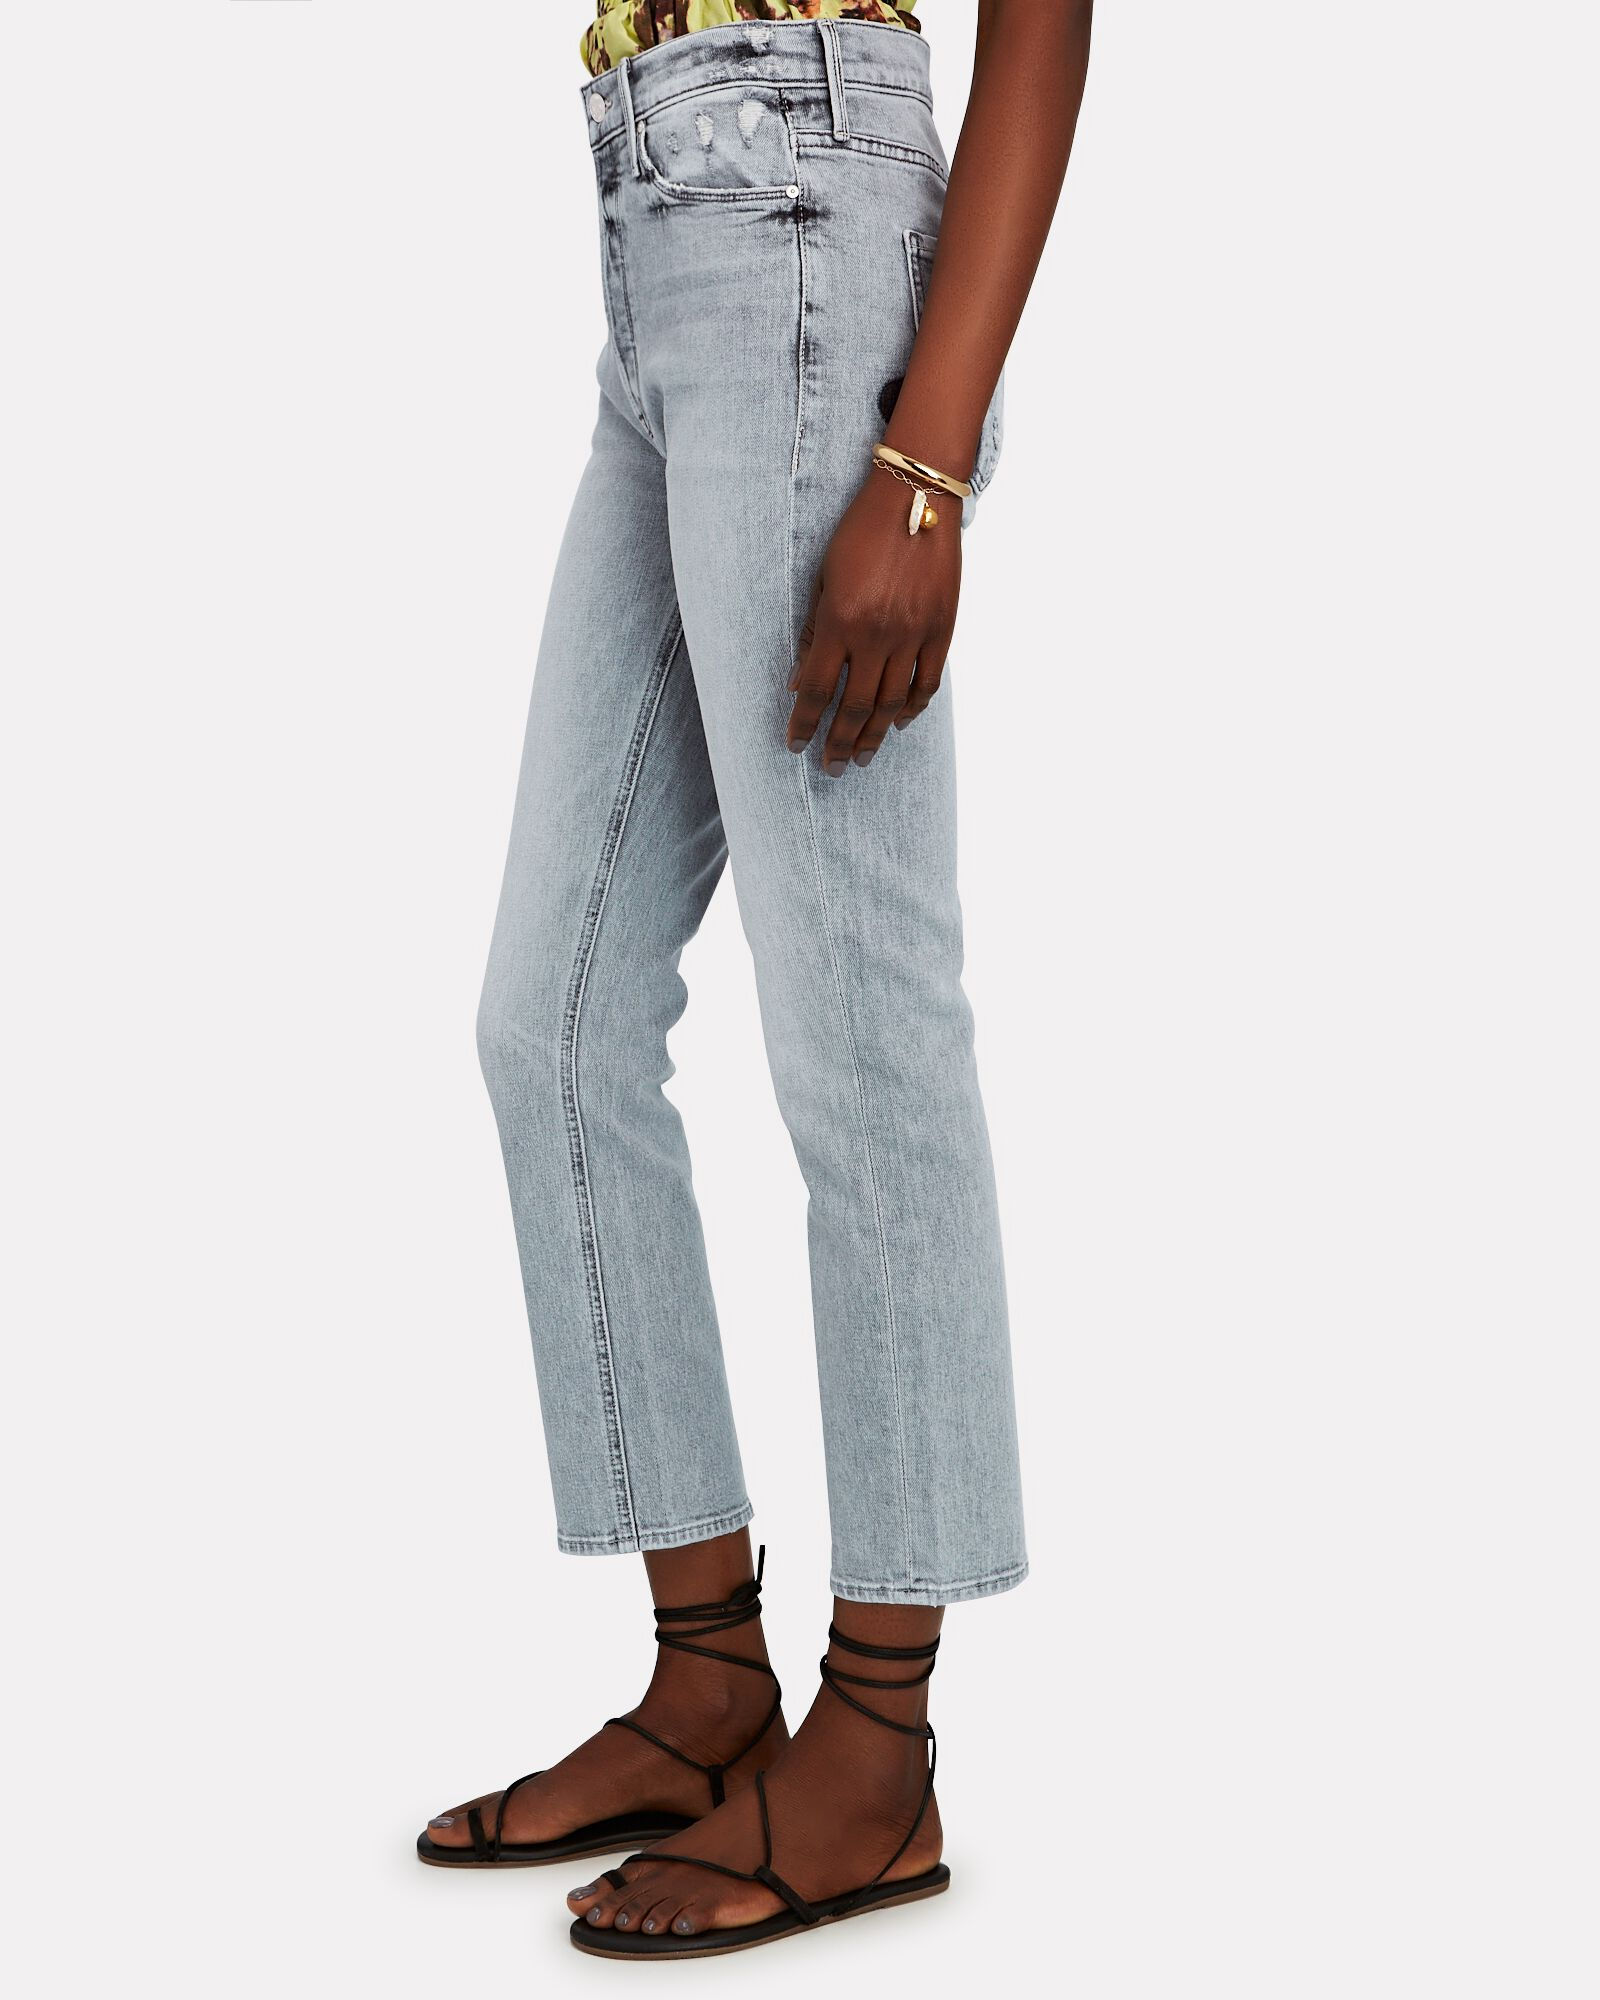 The Dazzler Straight-Leg Ankle Jeans, SHADOWS IN THE GRASS, hi-res